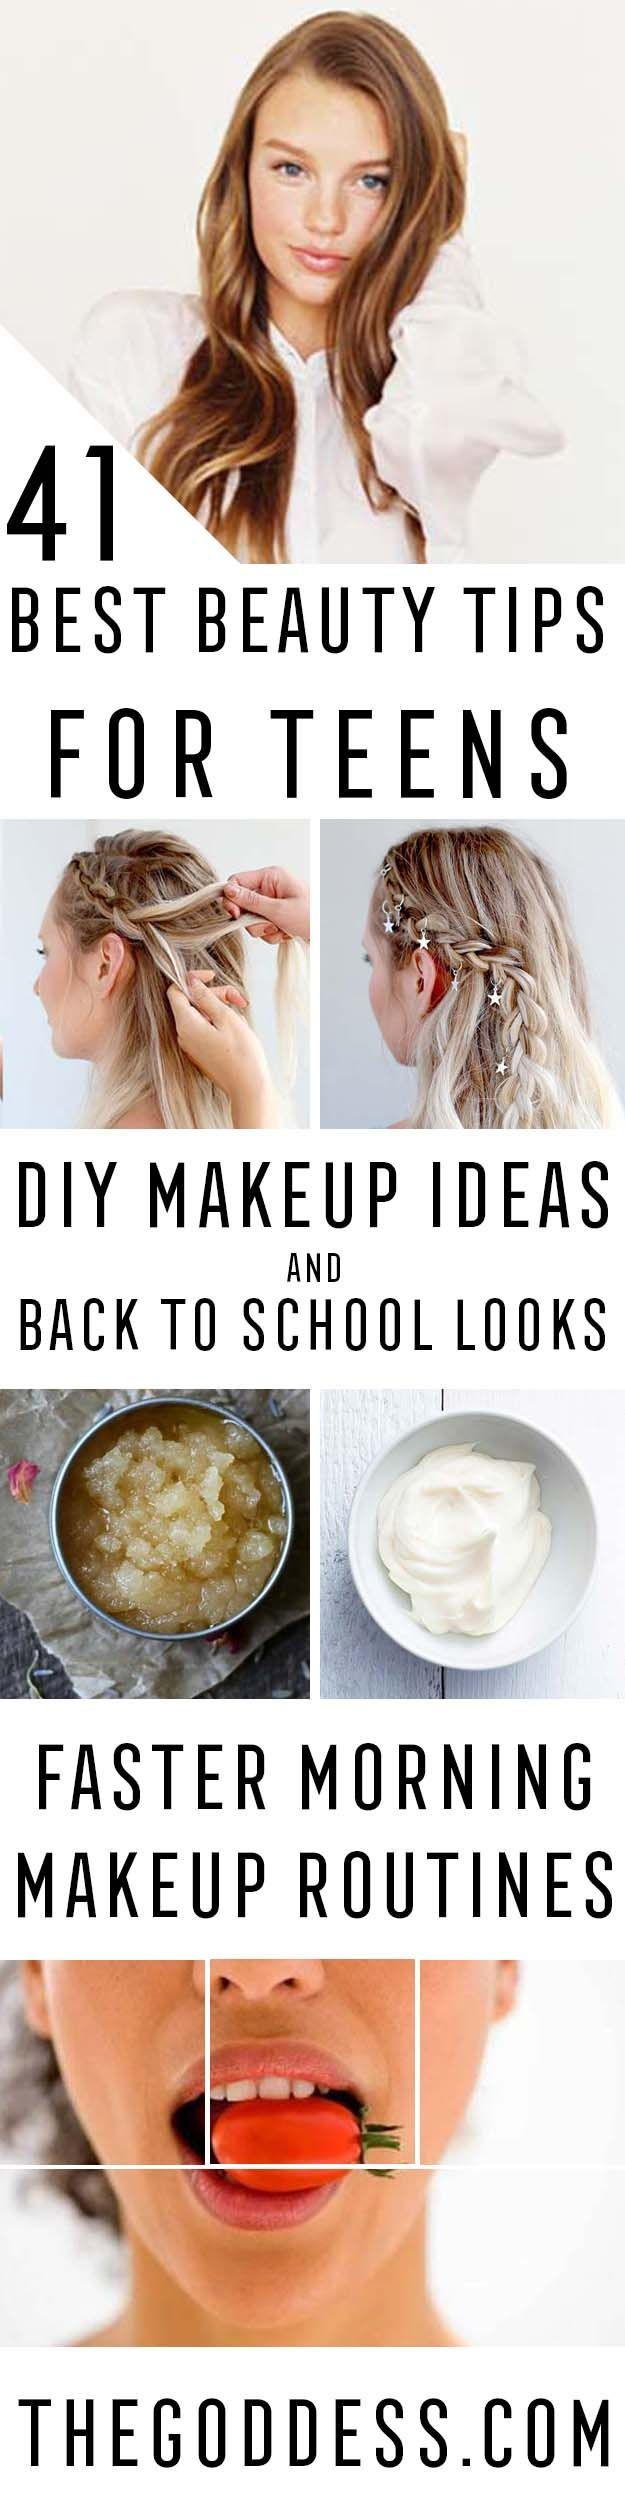 11 Best Beauty Tips for Teens - The Goddess  Beauty tips for